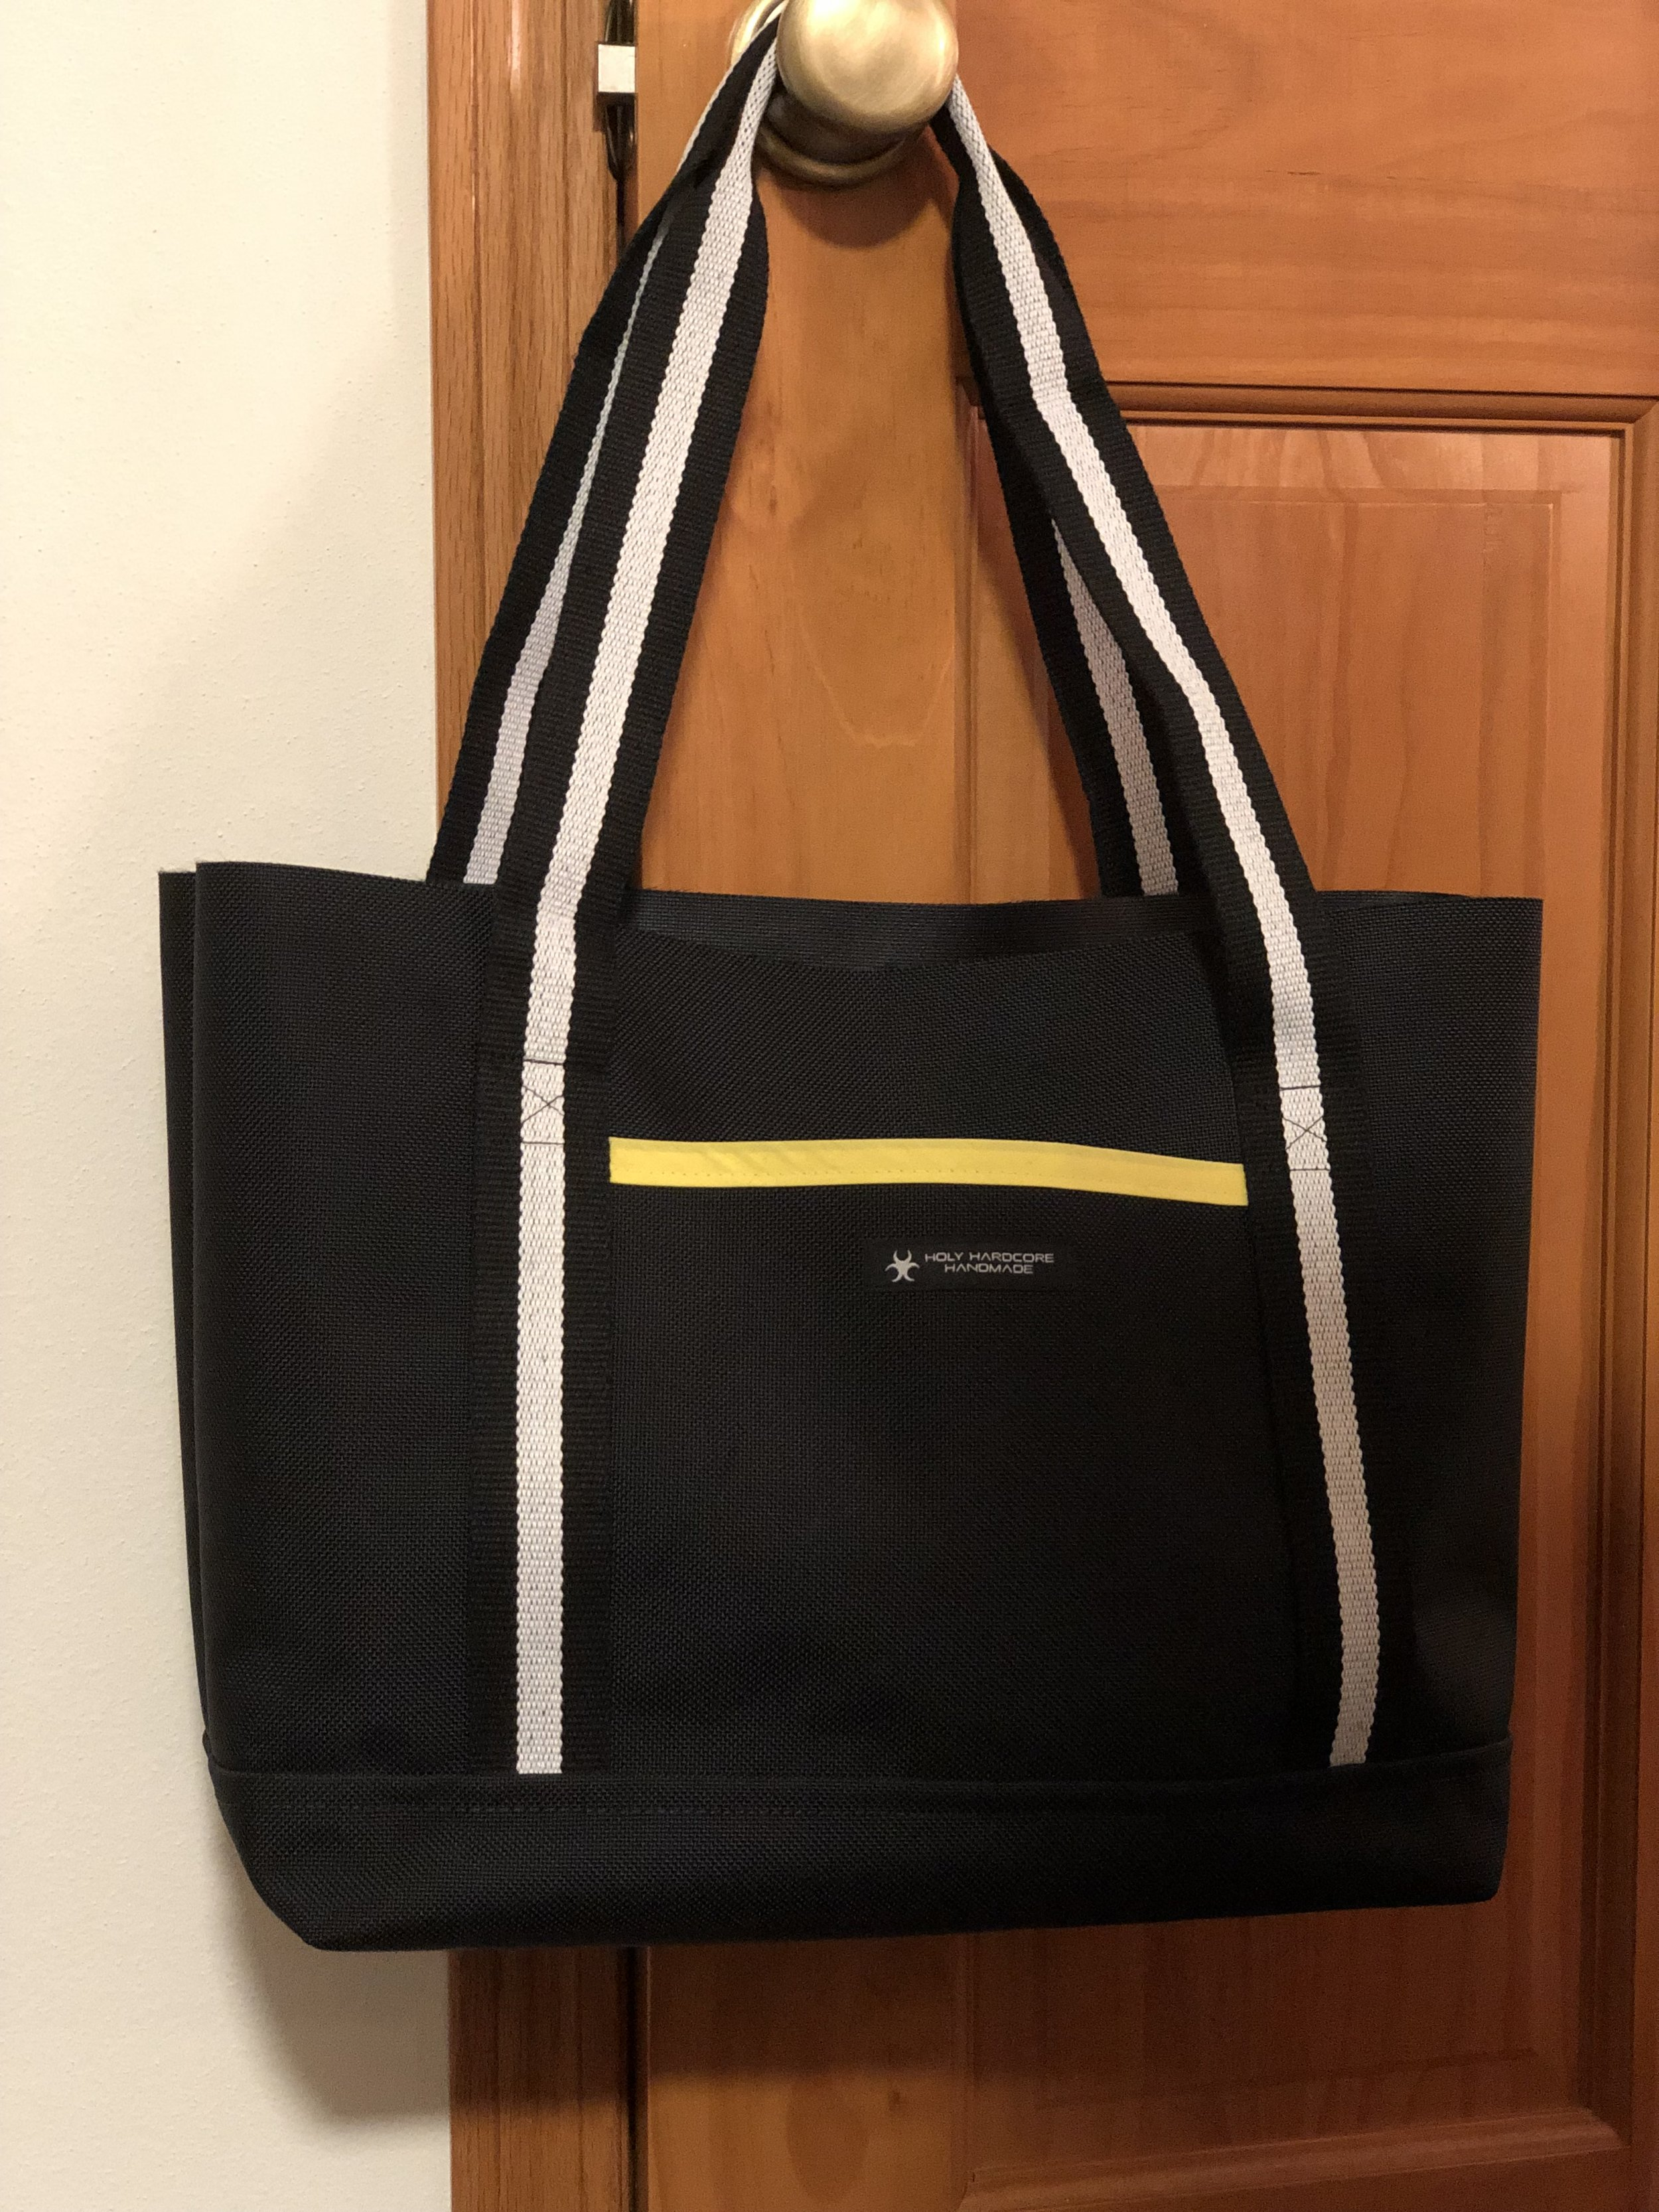 The Jody Tote